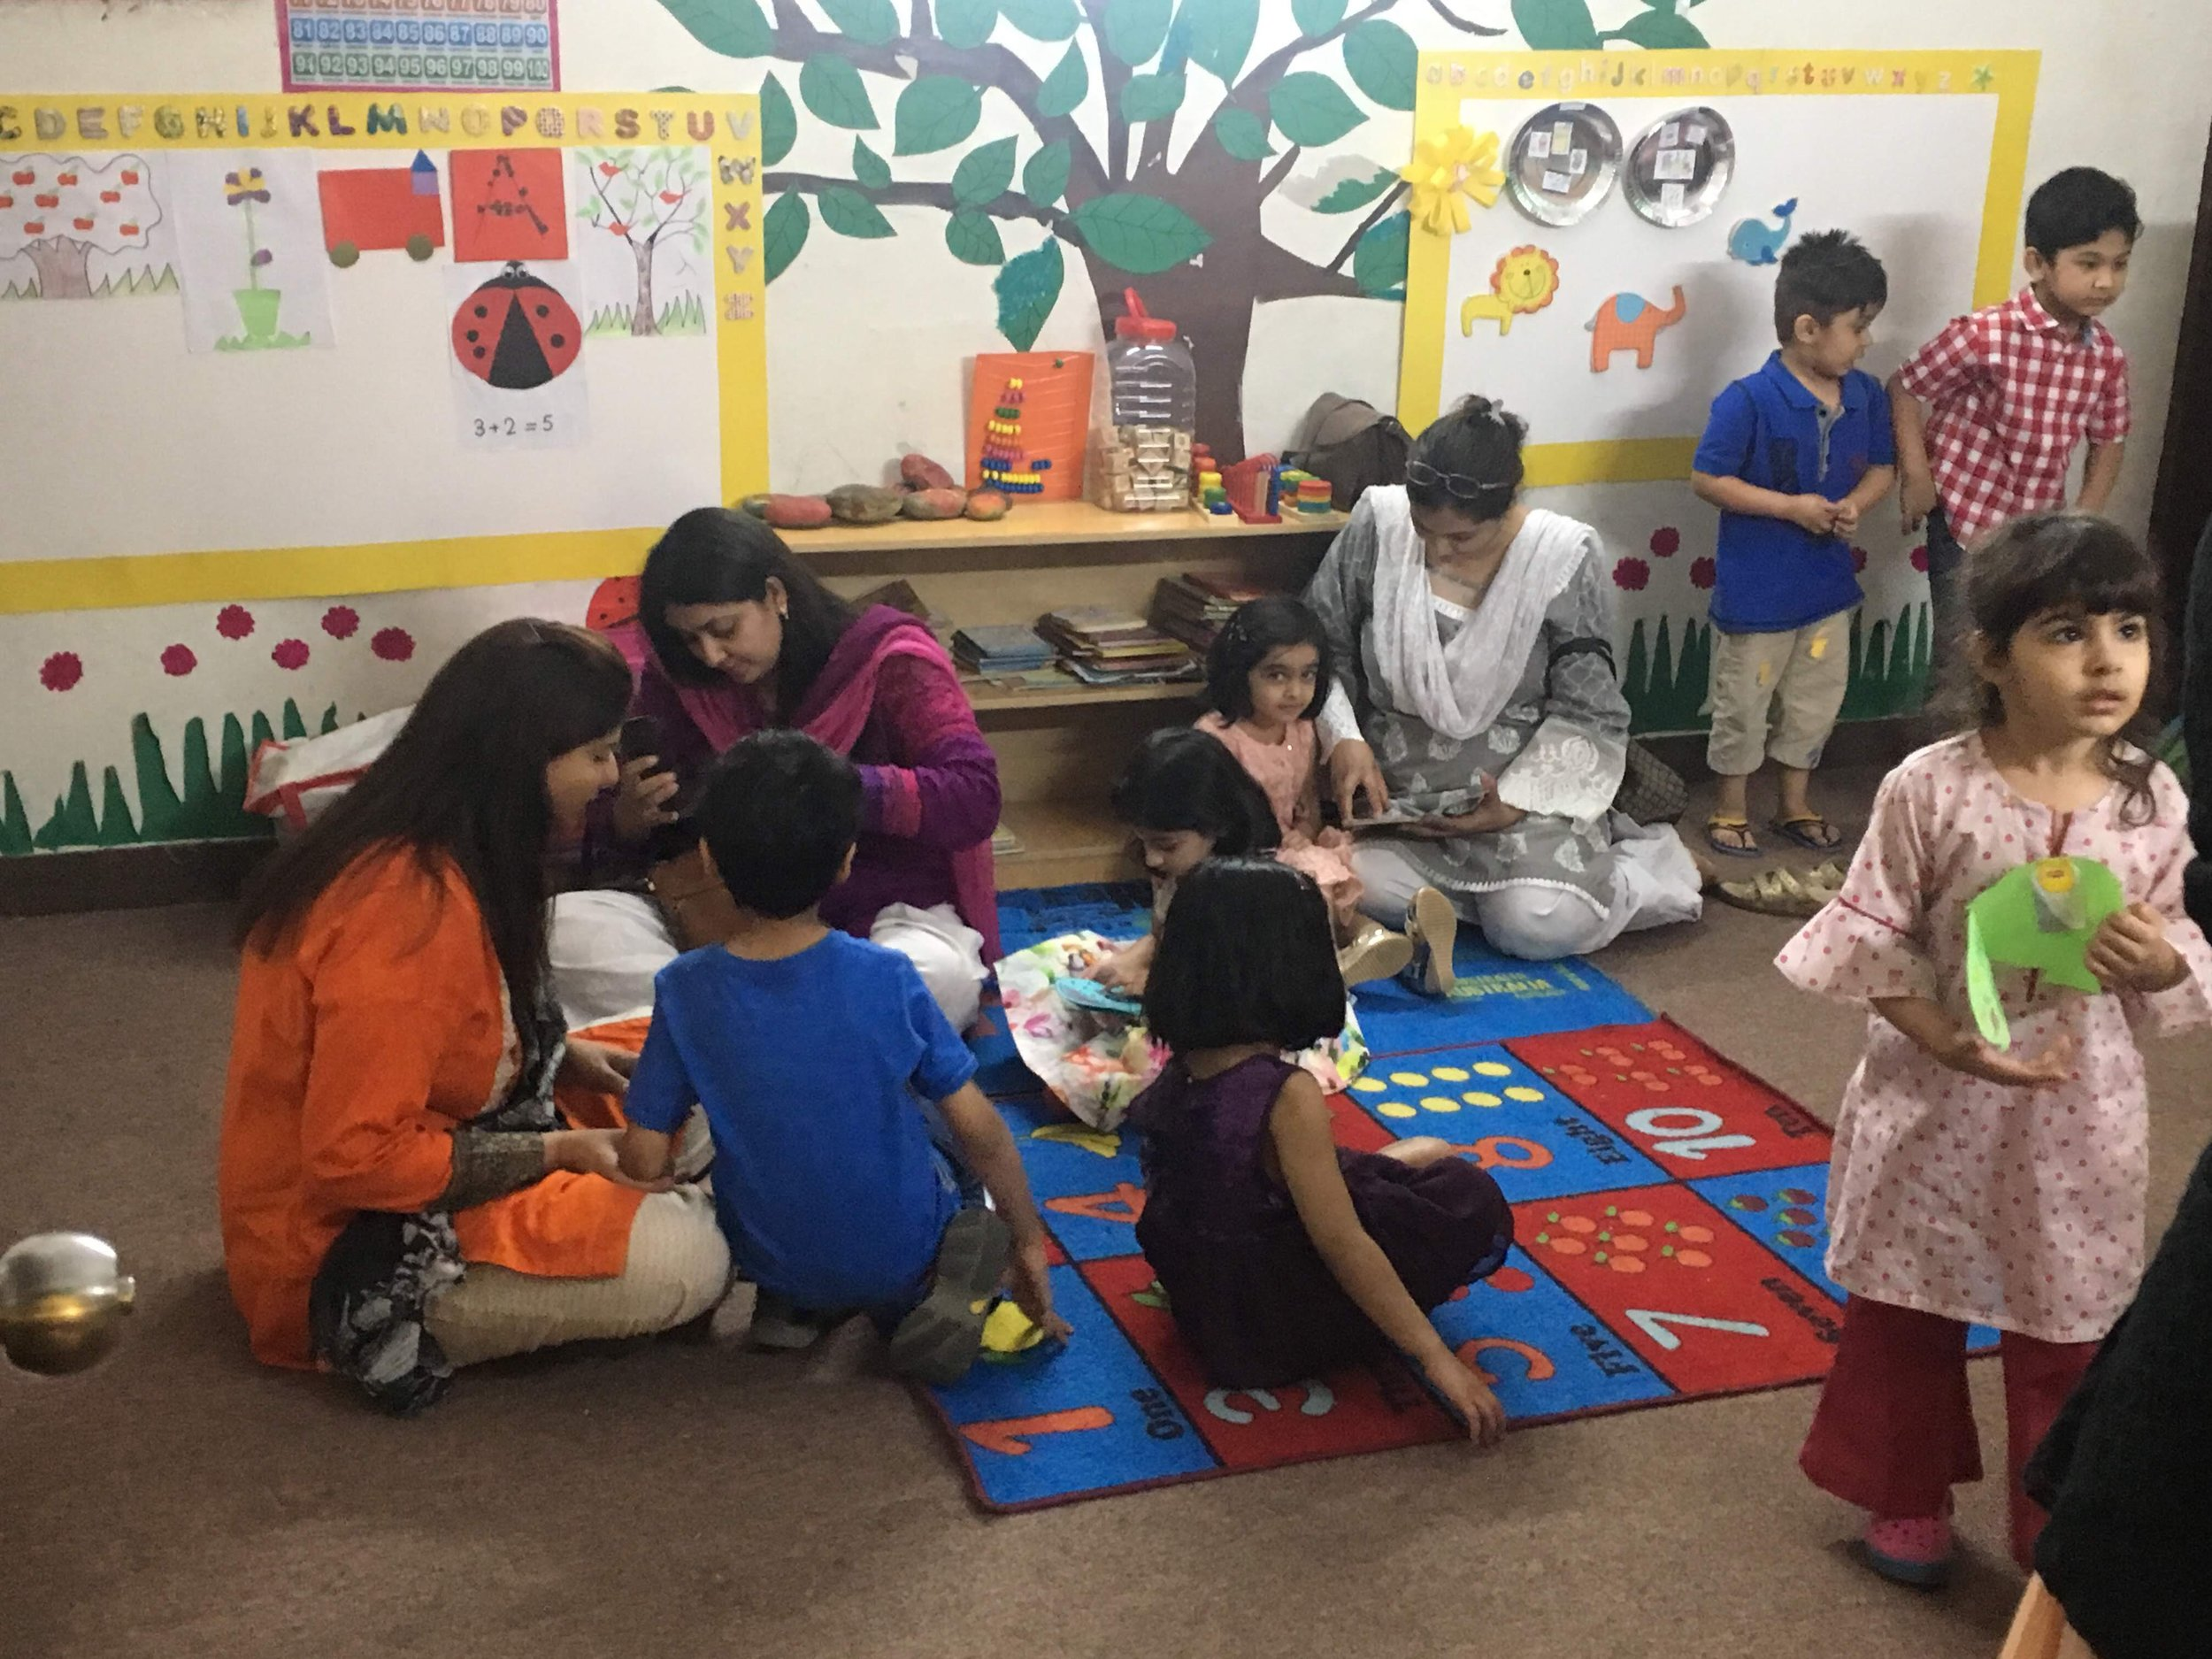 At Acton Academy Lahore, we follow the key principles of a Montessori education:   1. A deep respect for the child as a unique individual as the cornerstone of all the other principles  2.  Three-hour work cycle  to deepen learning and improve focus, concentration, and attention span  3. Mixed-age groupings to allow for peer-to-peer learning, leadership opportunities and mixed-age socialization  4. Freedom of movement and independent choice  5. Focus on five key areas of learning, including practical life, sensorial, mathematics, language, and culture  6. Experiential learning, investigation, and research, through the use of authentic Montessori materials, spread out throughout the space and divided by key area  7. Focus on educating the whole child, including physical, spiritual, social, mental, and emotional education  8. Emphasis on peace, the community, mutual respect, and a global perspective, including learning peaceful conflict resolution skills